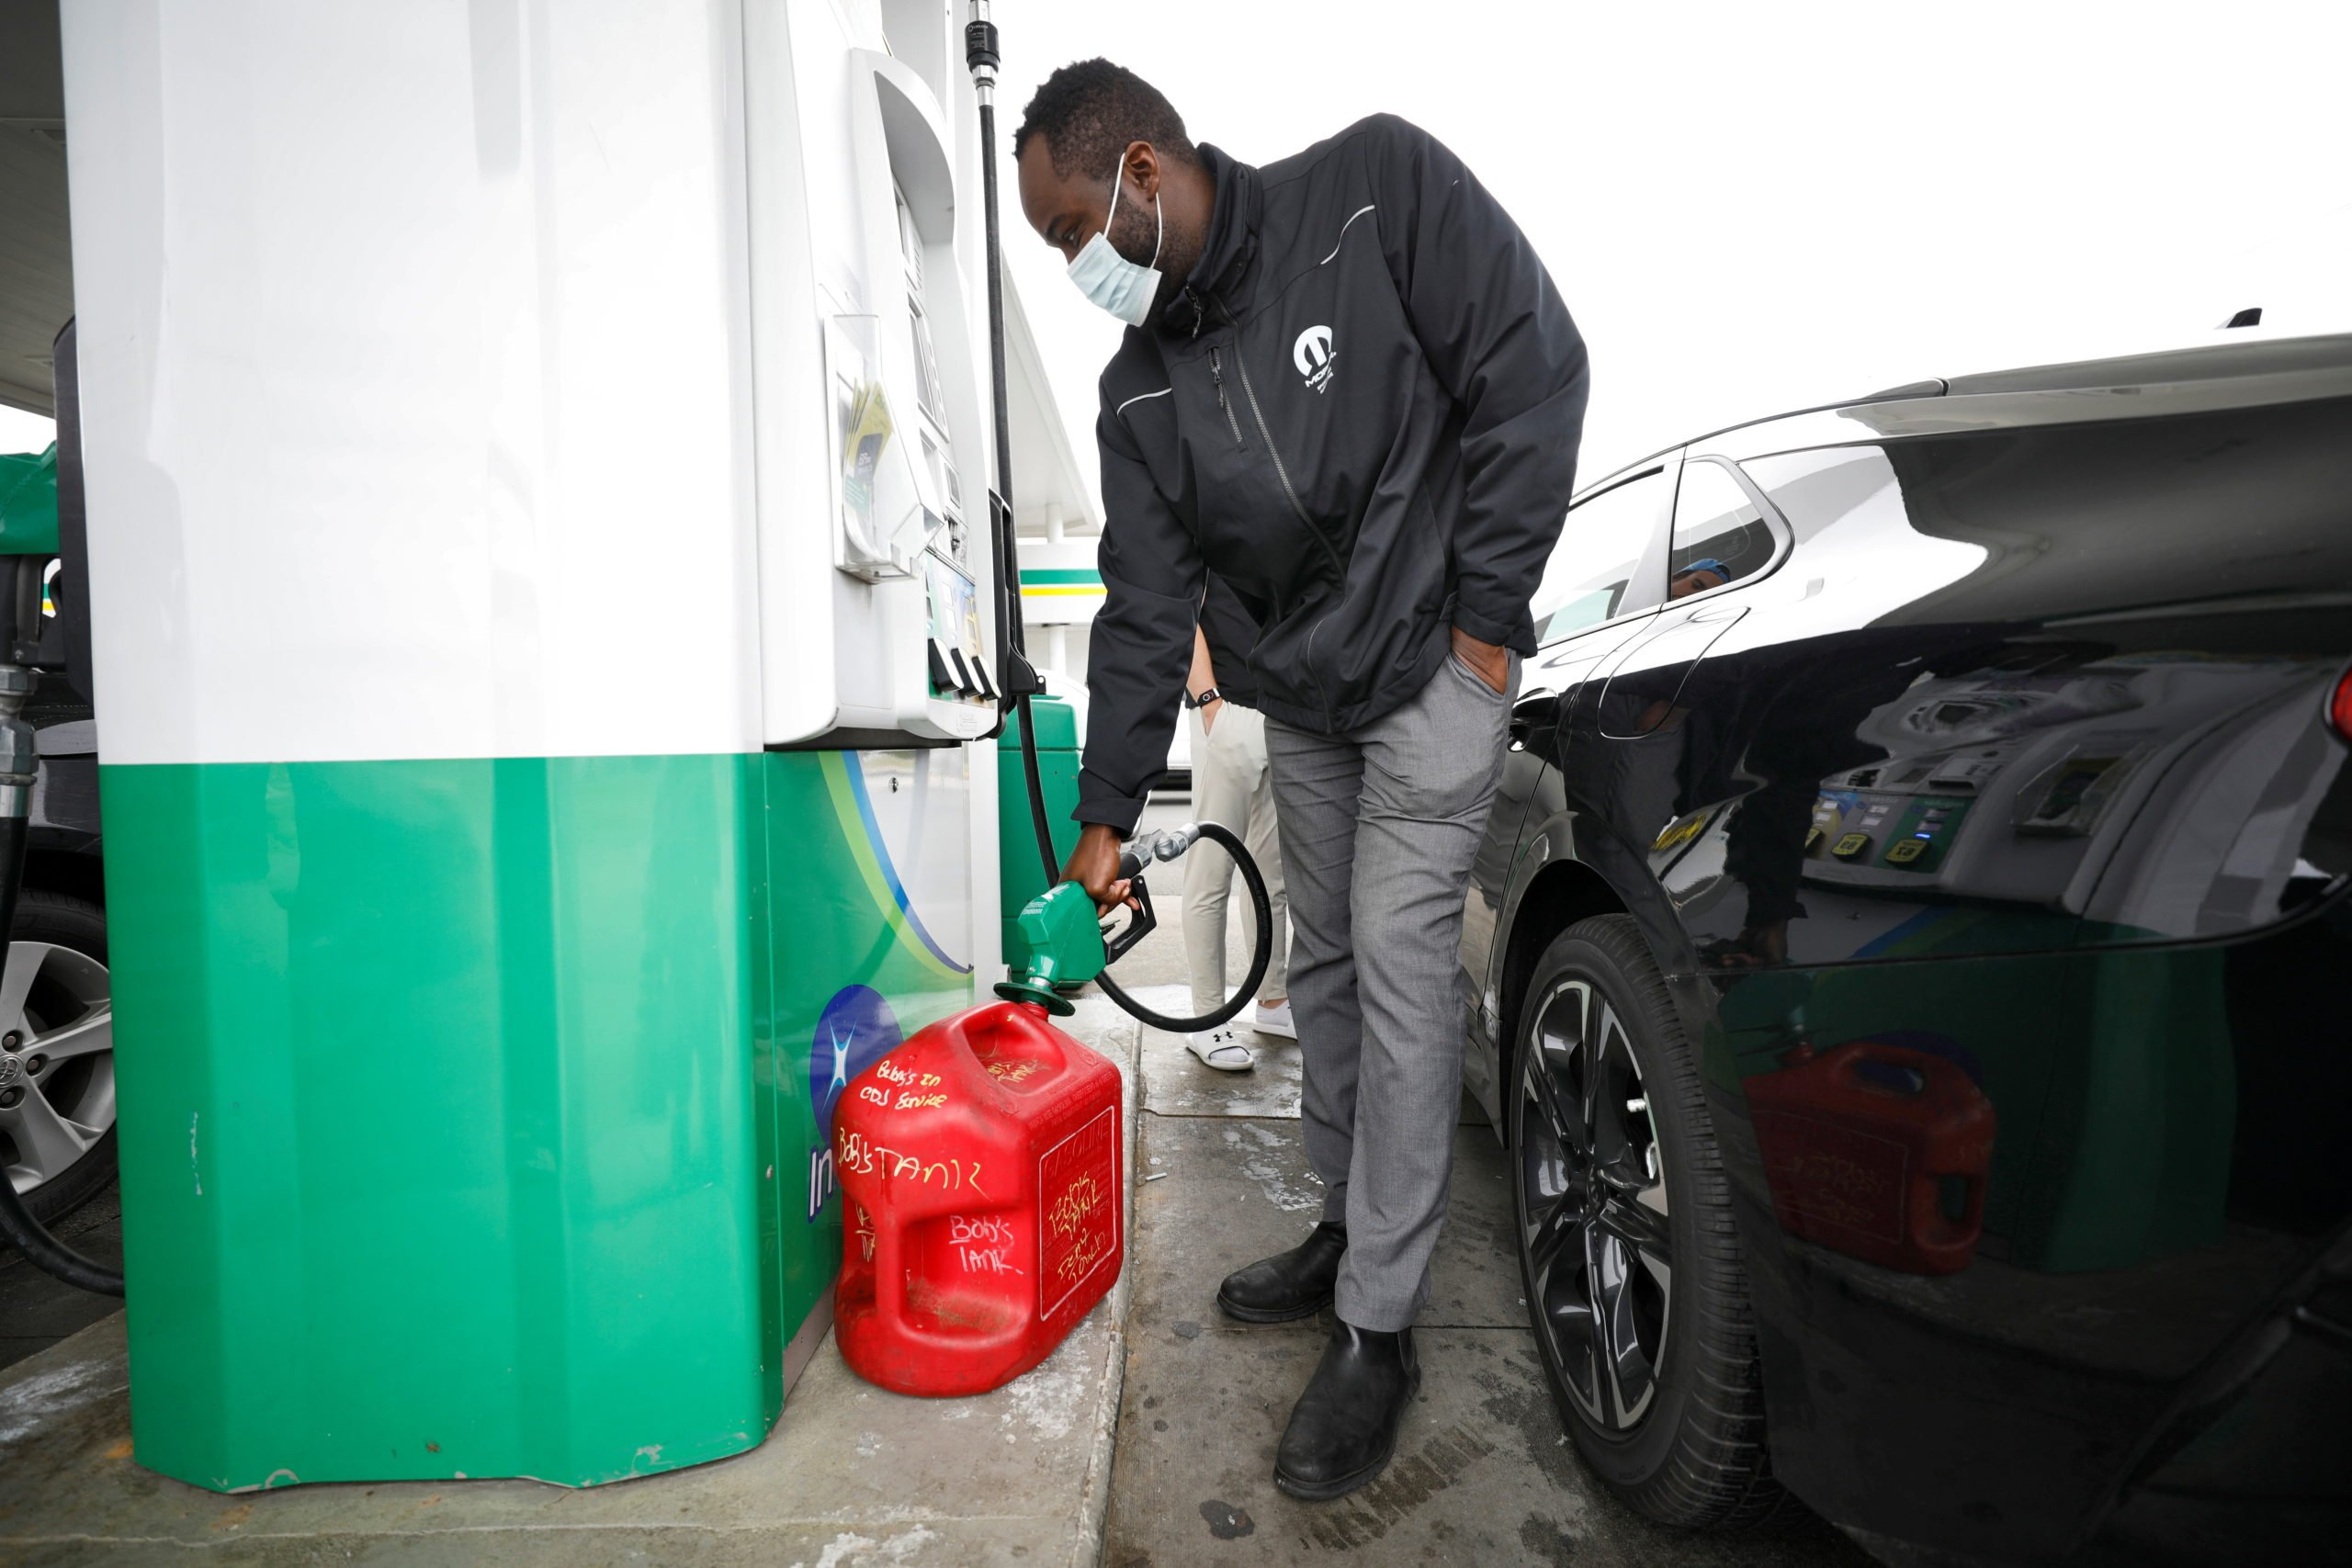 A local resident fills up a portable gas container as demand for gasoline surges following the cyberattack that crippled the Colonial Pipeline, in Durham, North Carolina, U.S. May 12, 2021. (REUTERS/Jonathan Drake)